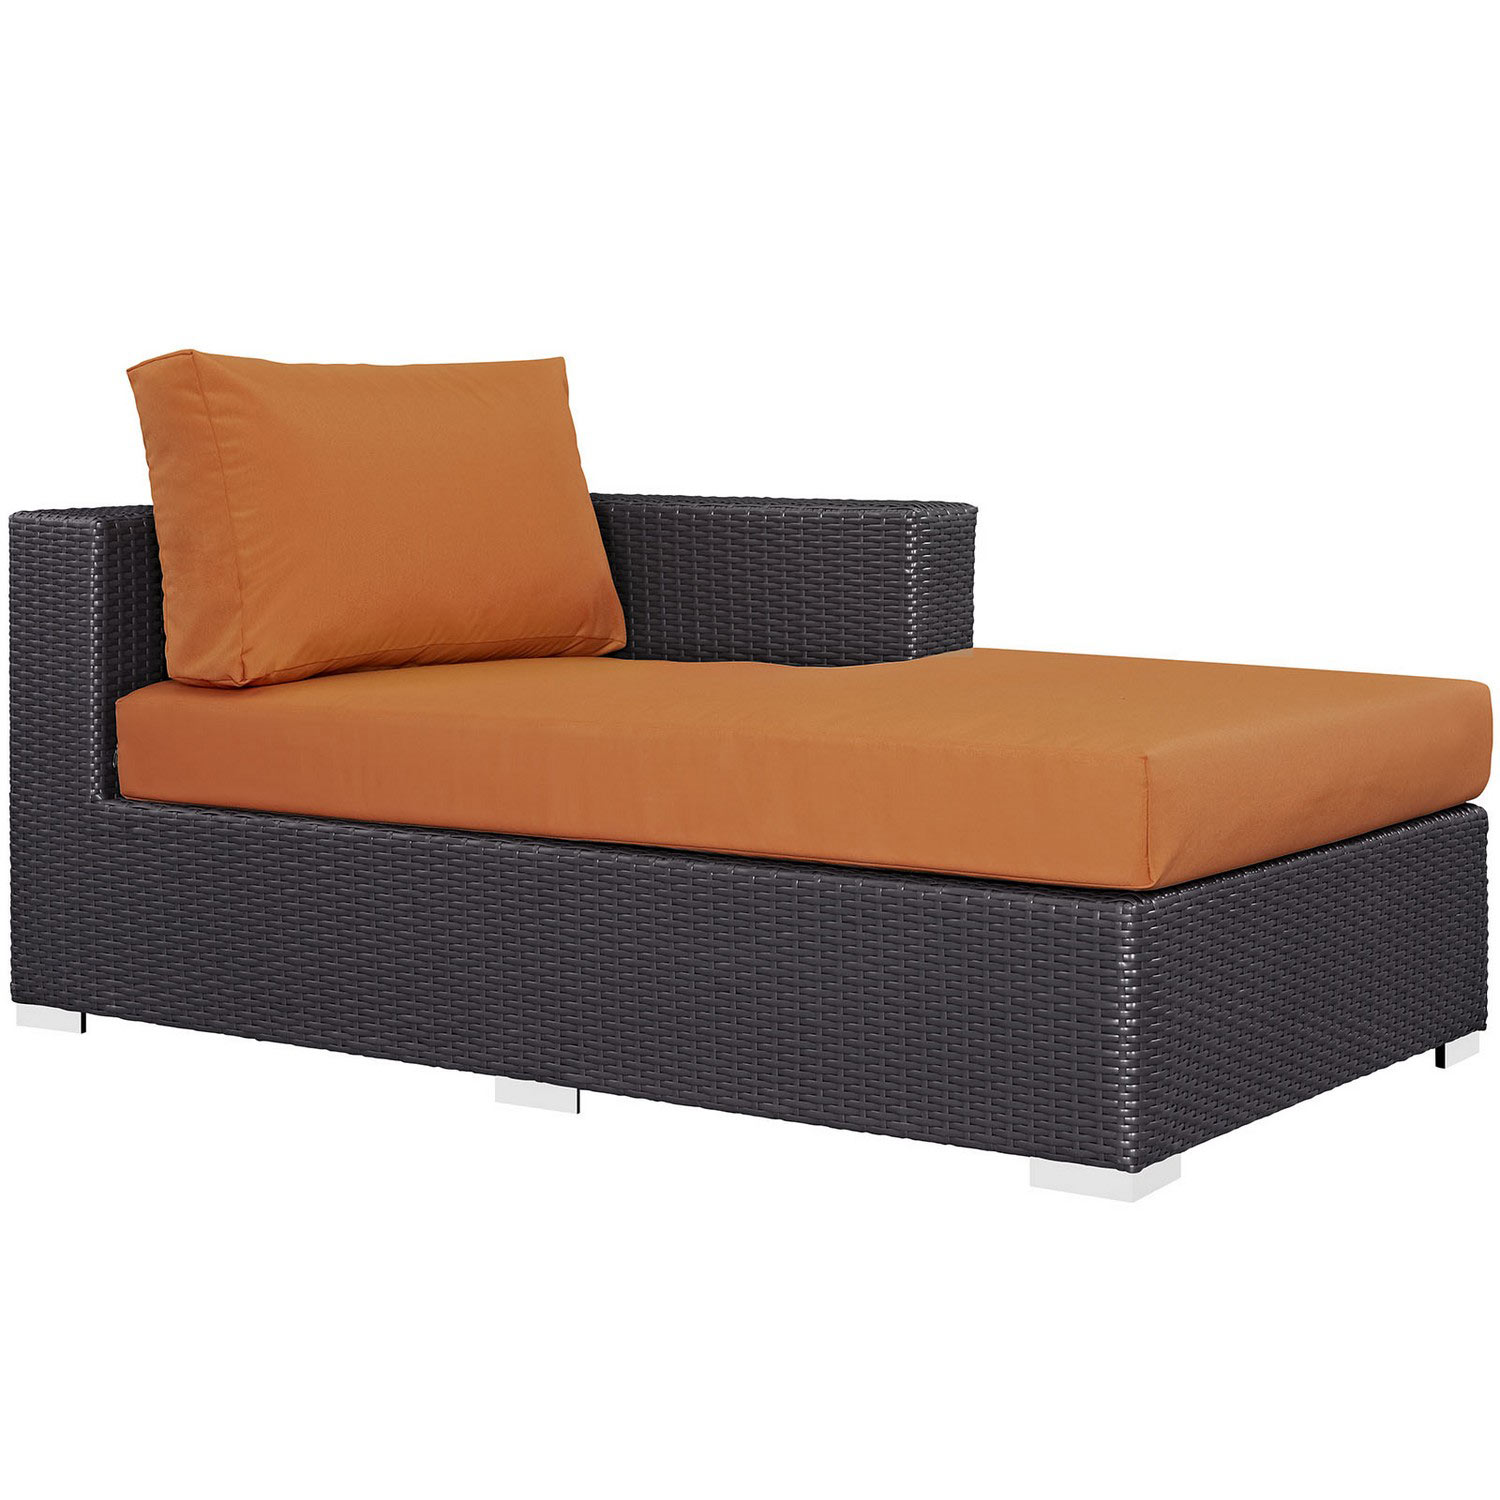 Modway Convene Outdoor Patio Fabric Right Arm Chaise - Espresso Orange